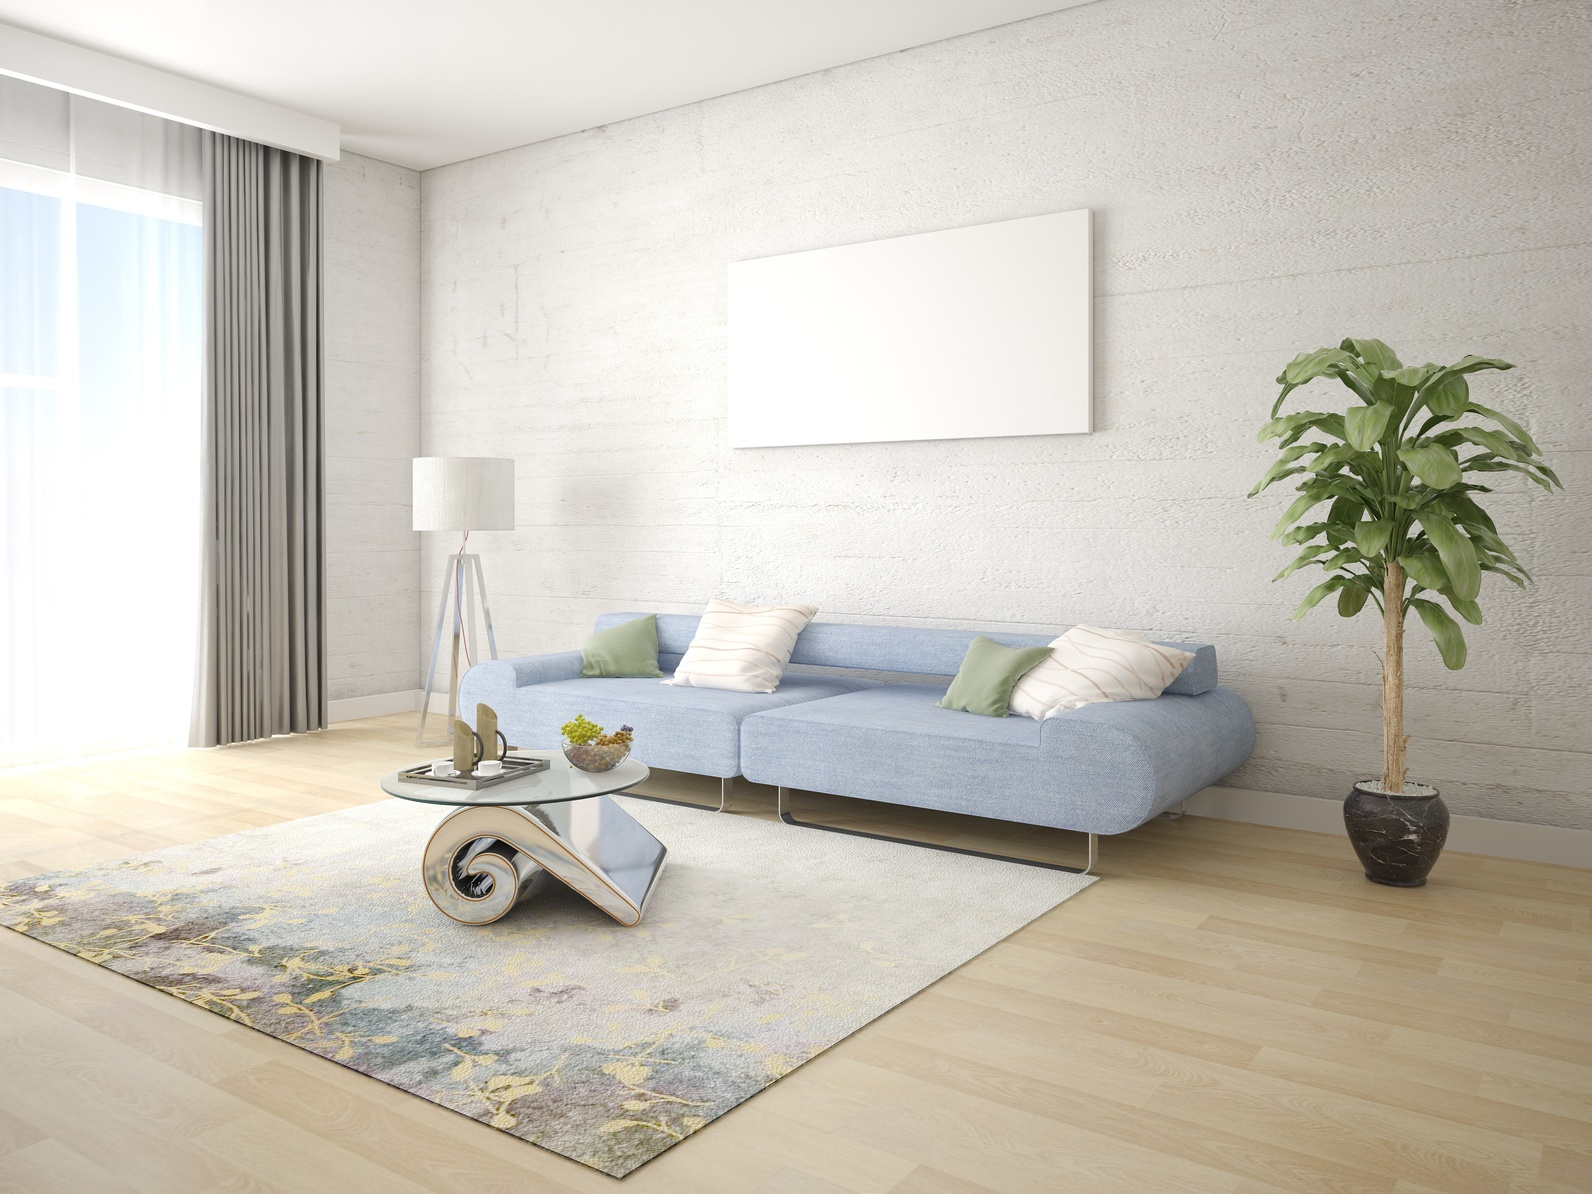 Mock up a fashionable living room with a stylish compact sofa and a light hipster background.